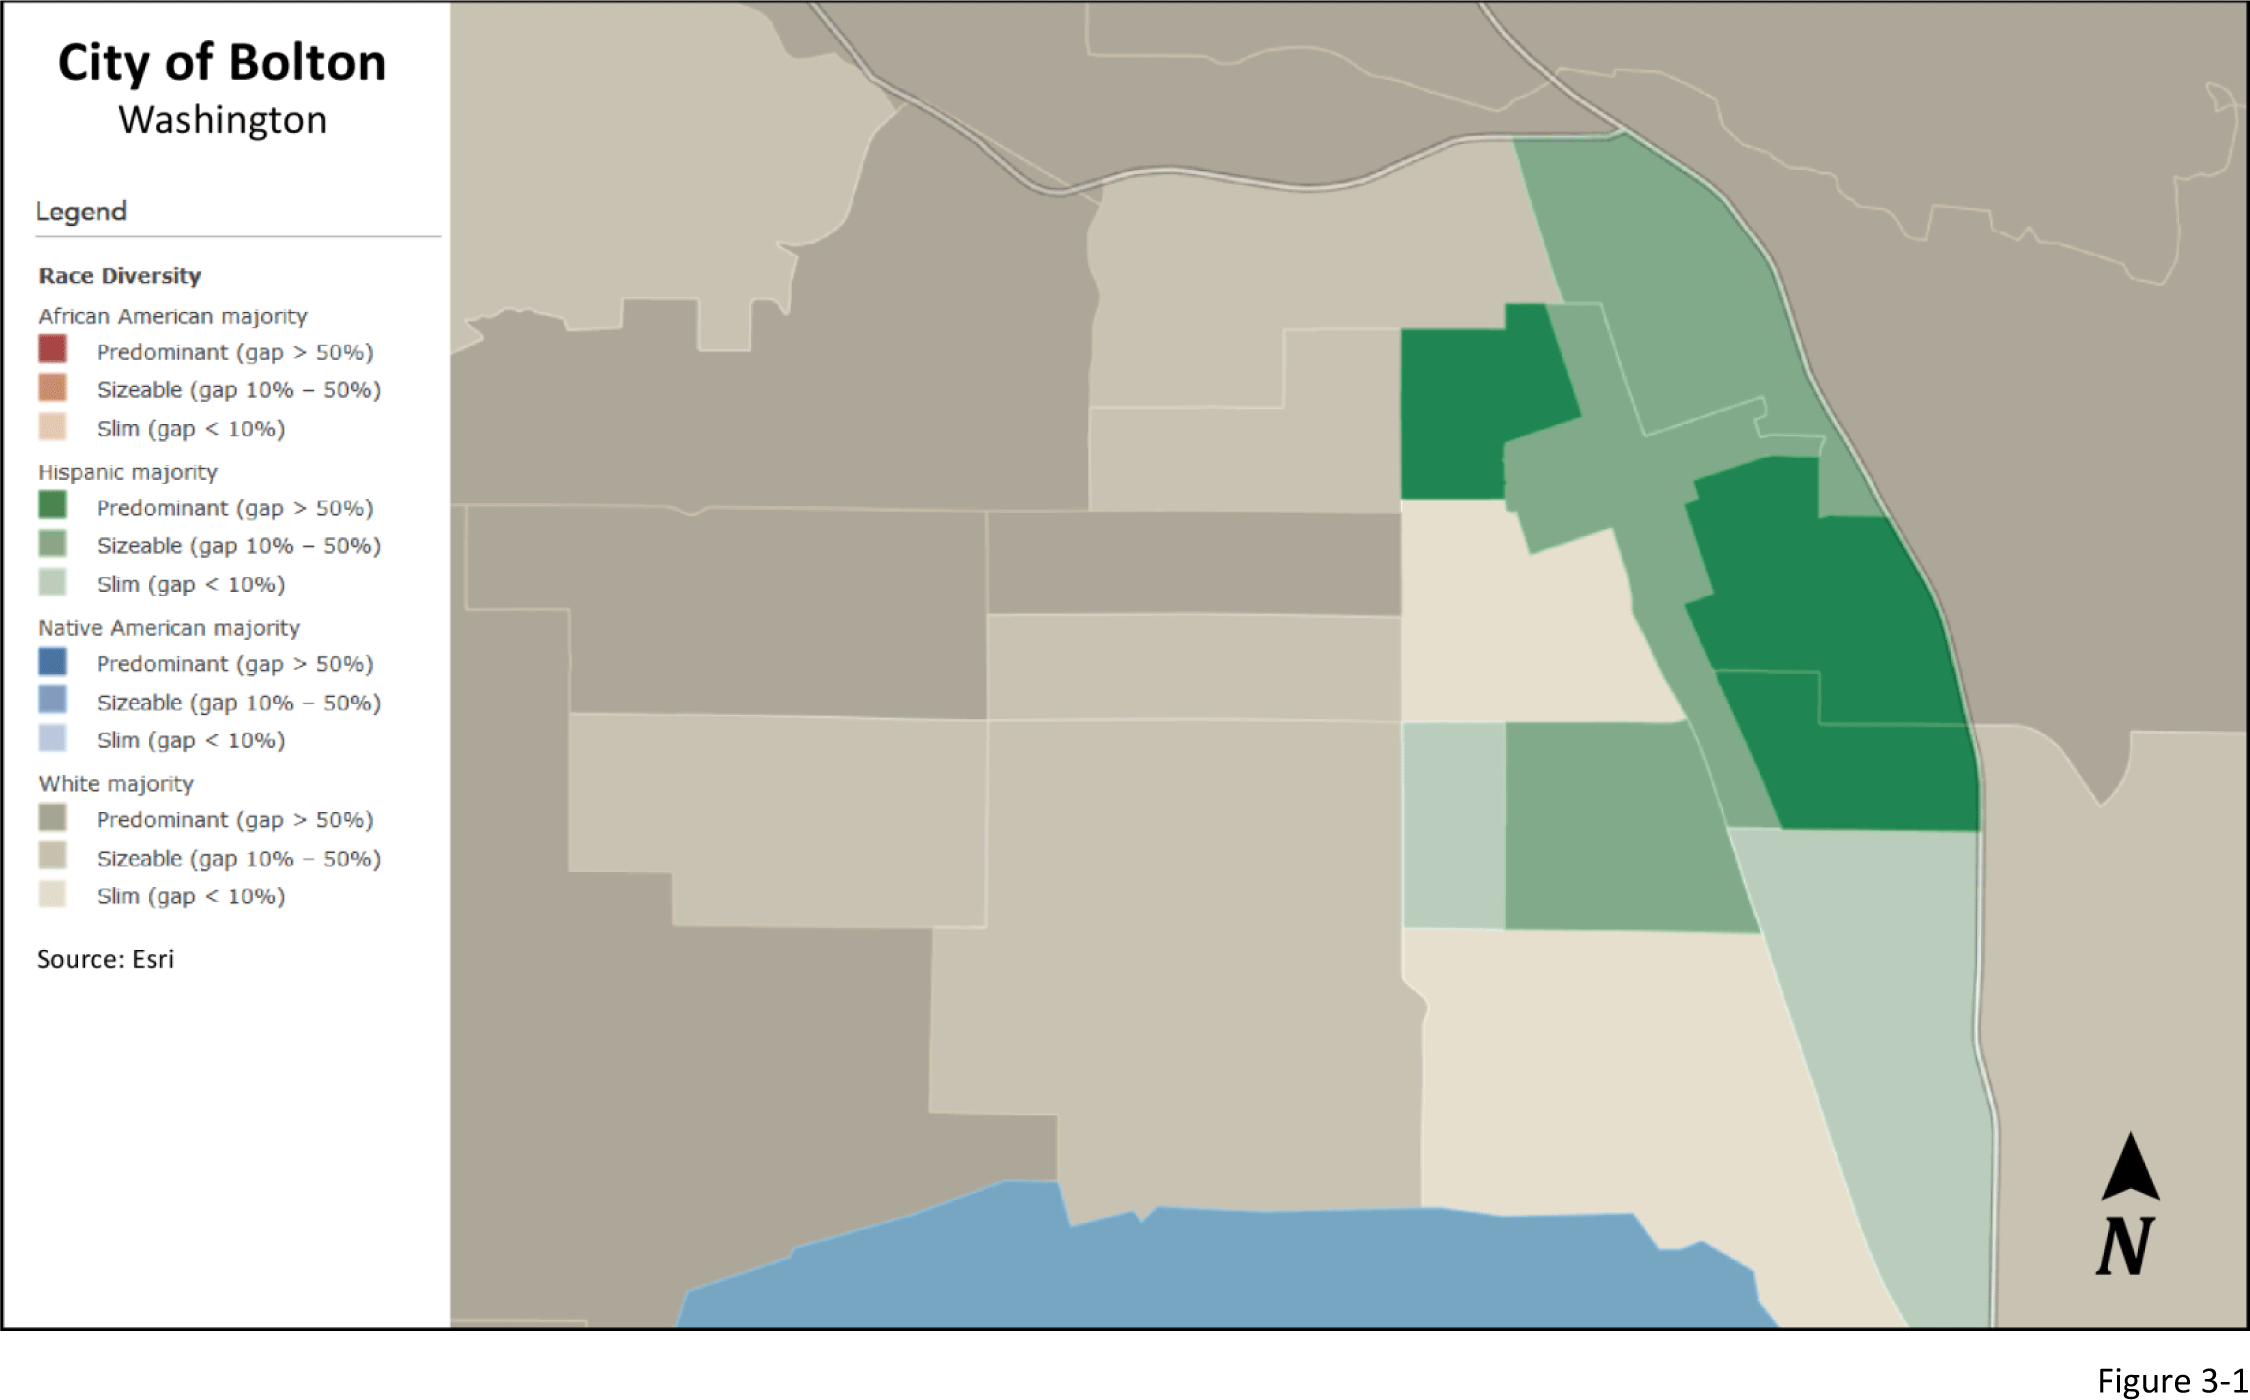 Figure 3-1: City of Bolton, Washington racial diversity